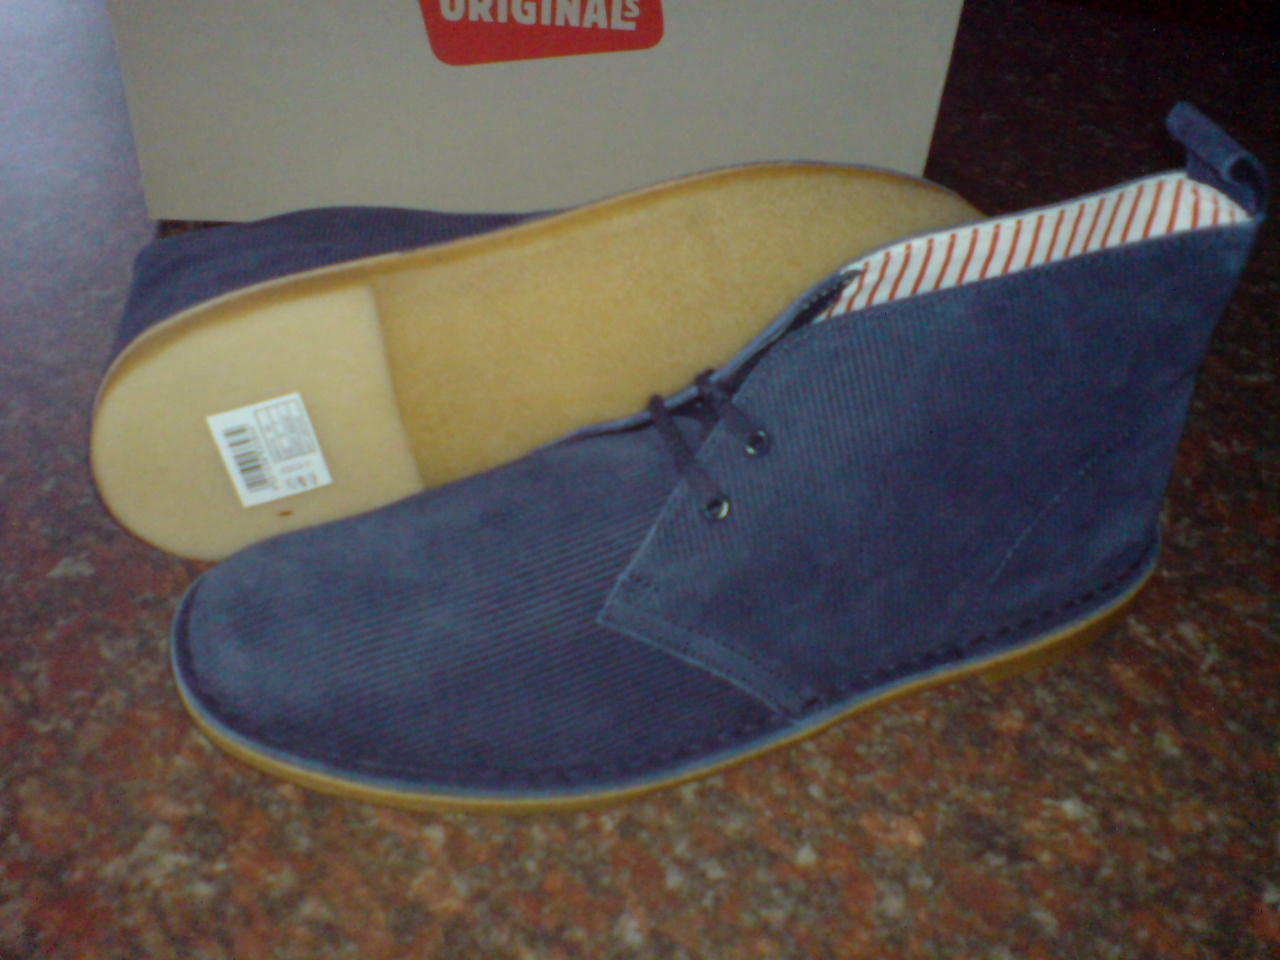 NUOVO CLARKS ORIGINALS ** Desert Boots ** X JAGUAR Navy in Pelle ** Uk 7.5 F